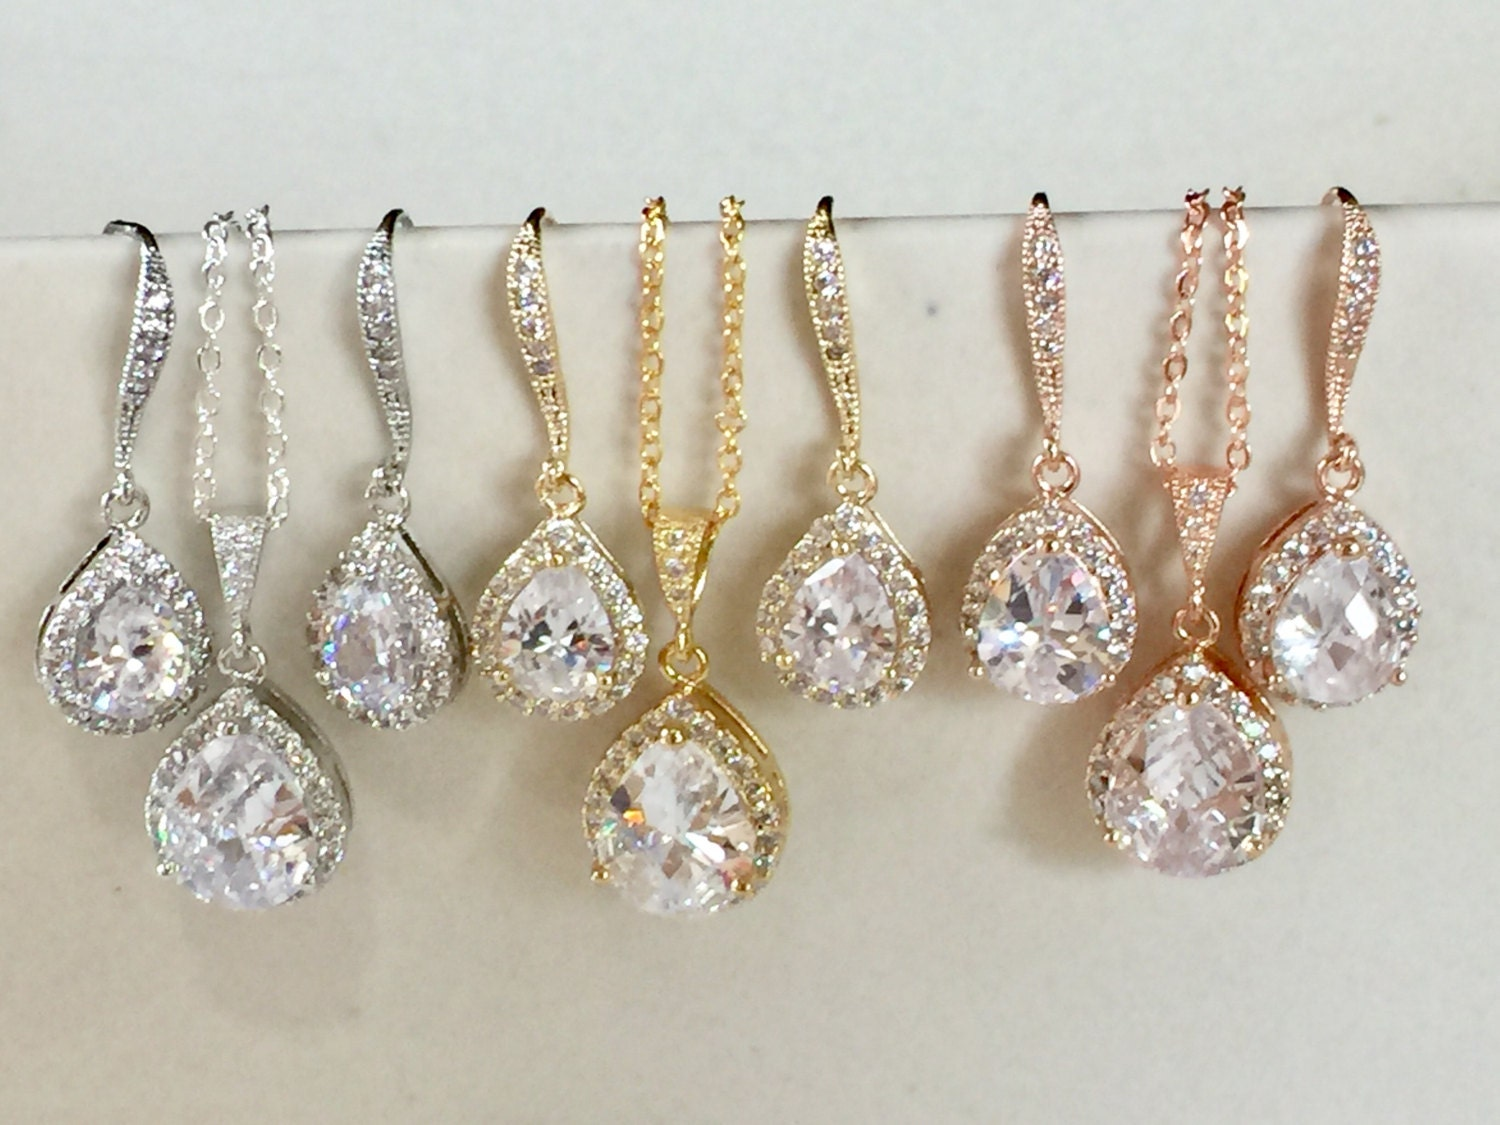 Bridal Jewelry Gift Sets : sets or more discounted Bridesmaid jewelry gift set on gift